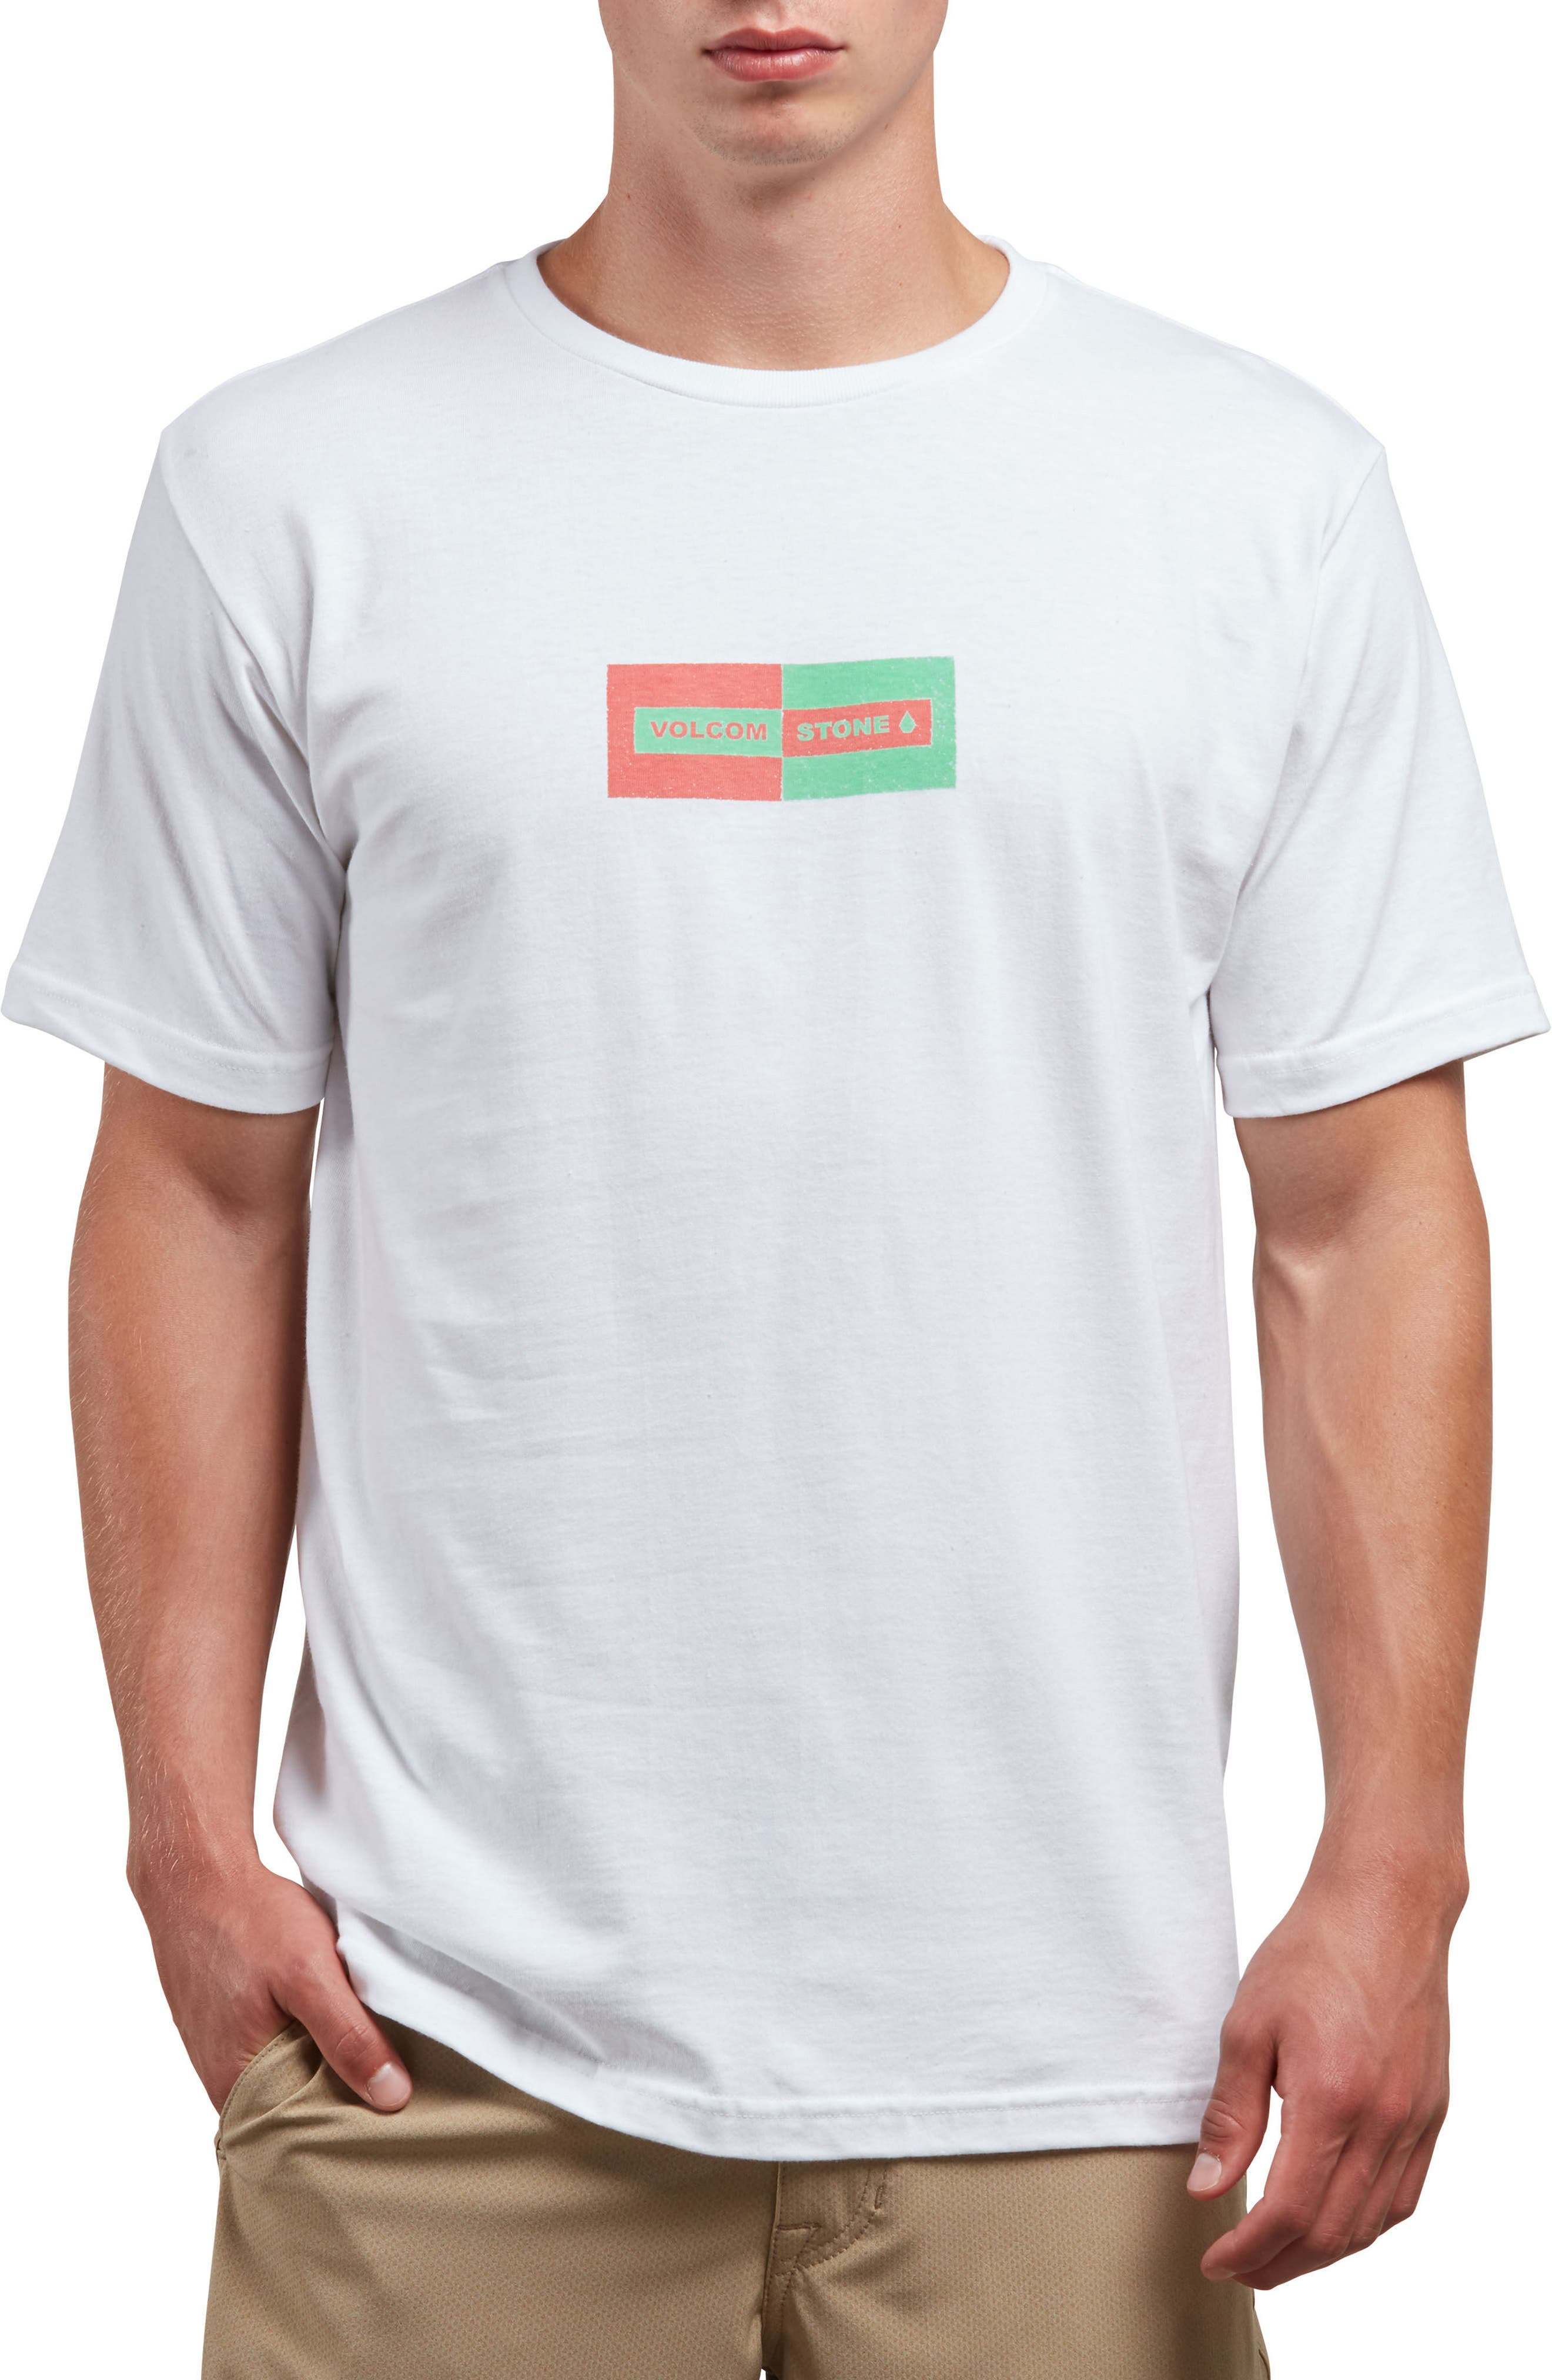 Same Difference T-Shirt,                         Main,                         color, White